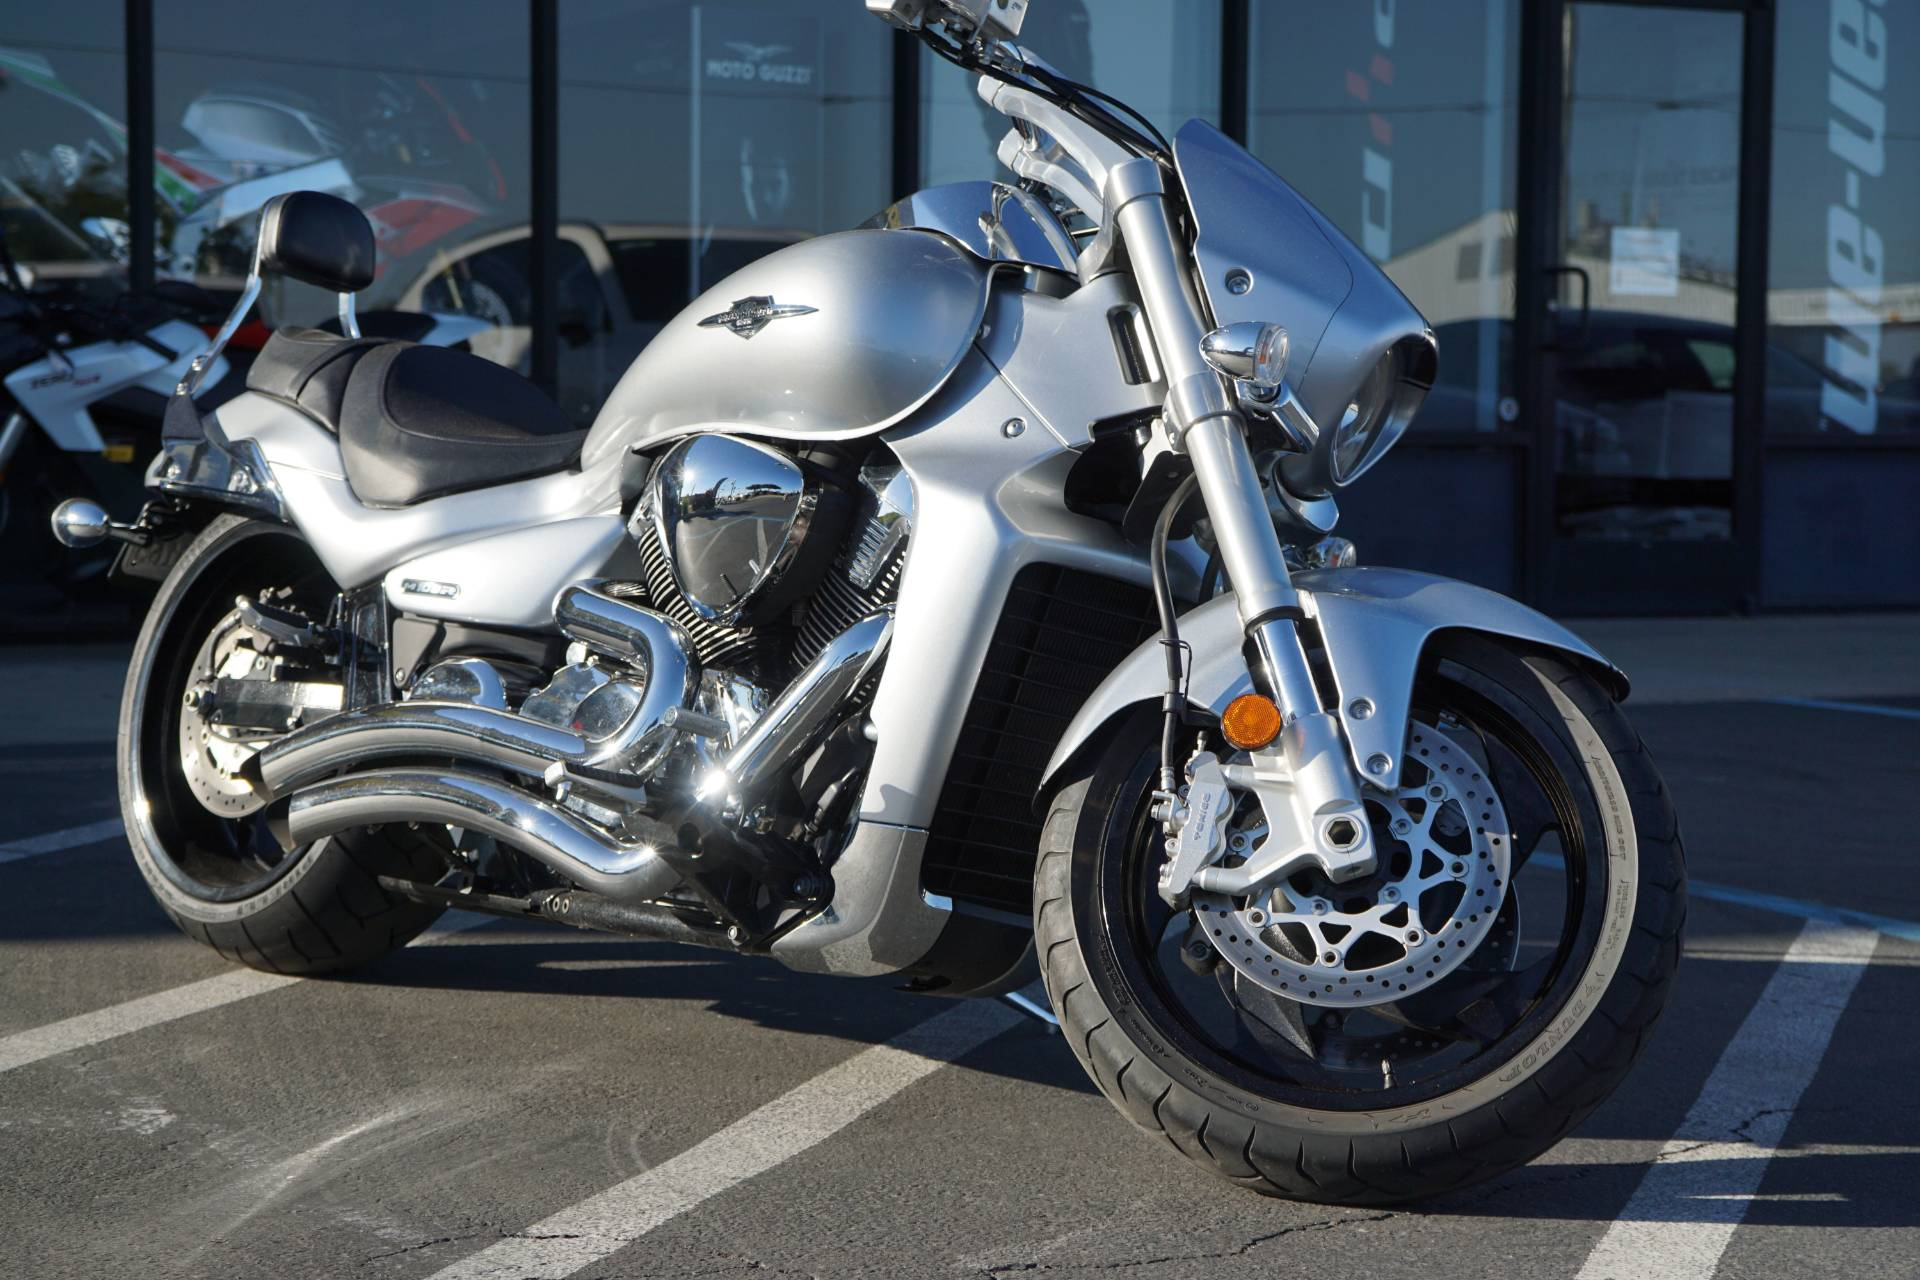 Used 2014 Suzuki Boulevard M109R Limited Edition Motorcycles in Elk ...